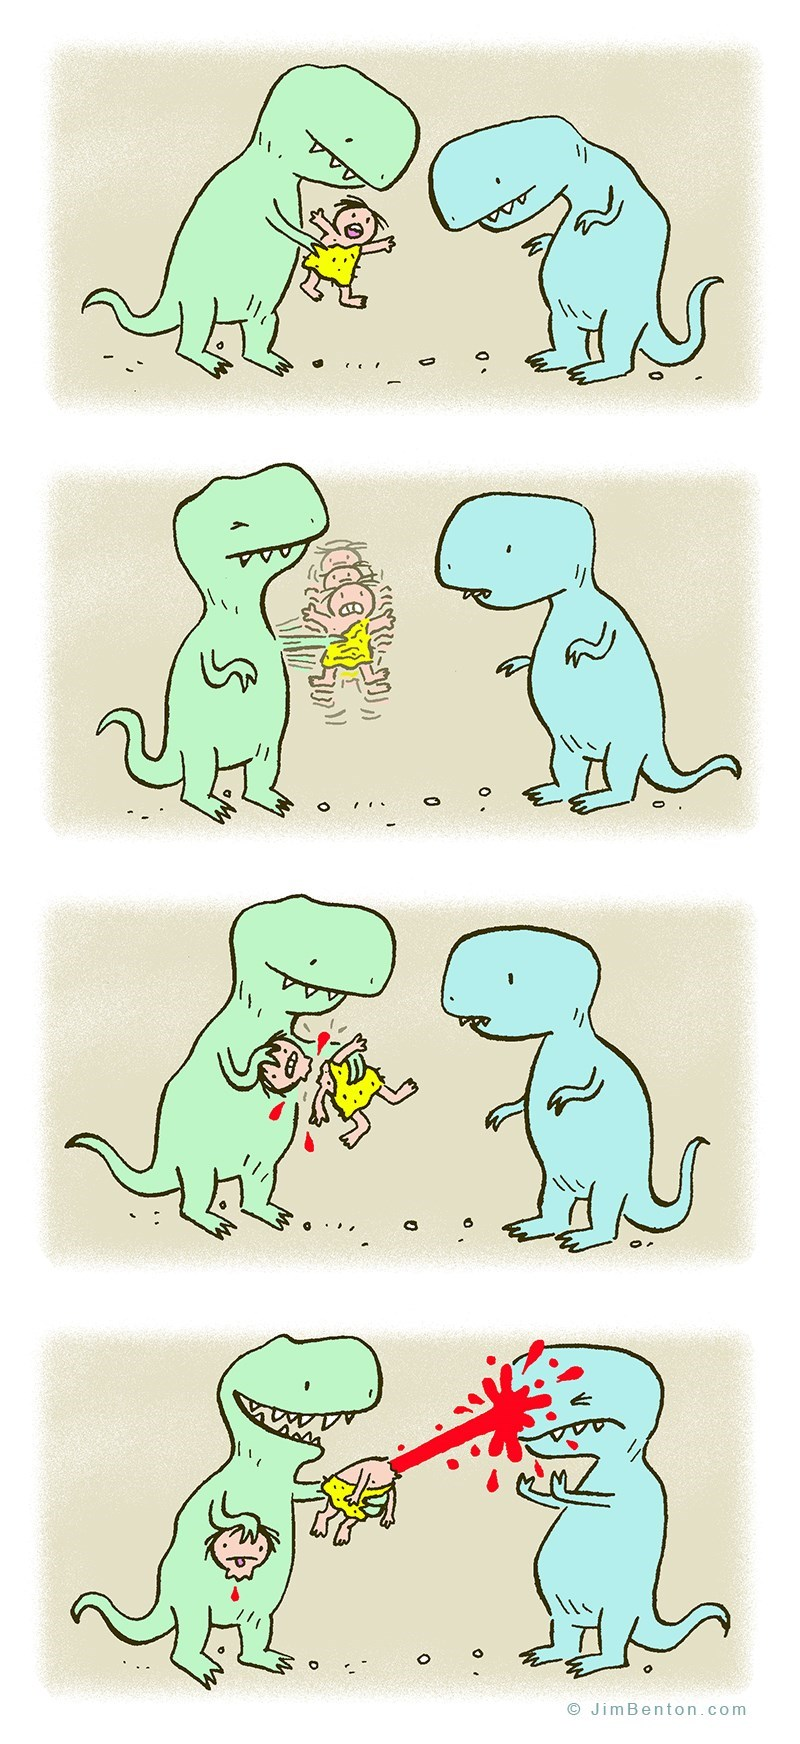 web-comics-dinosaur-carbon-dating-dark-humor-joke